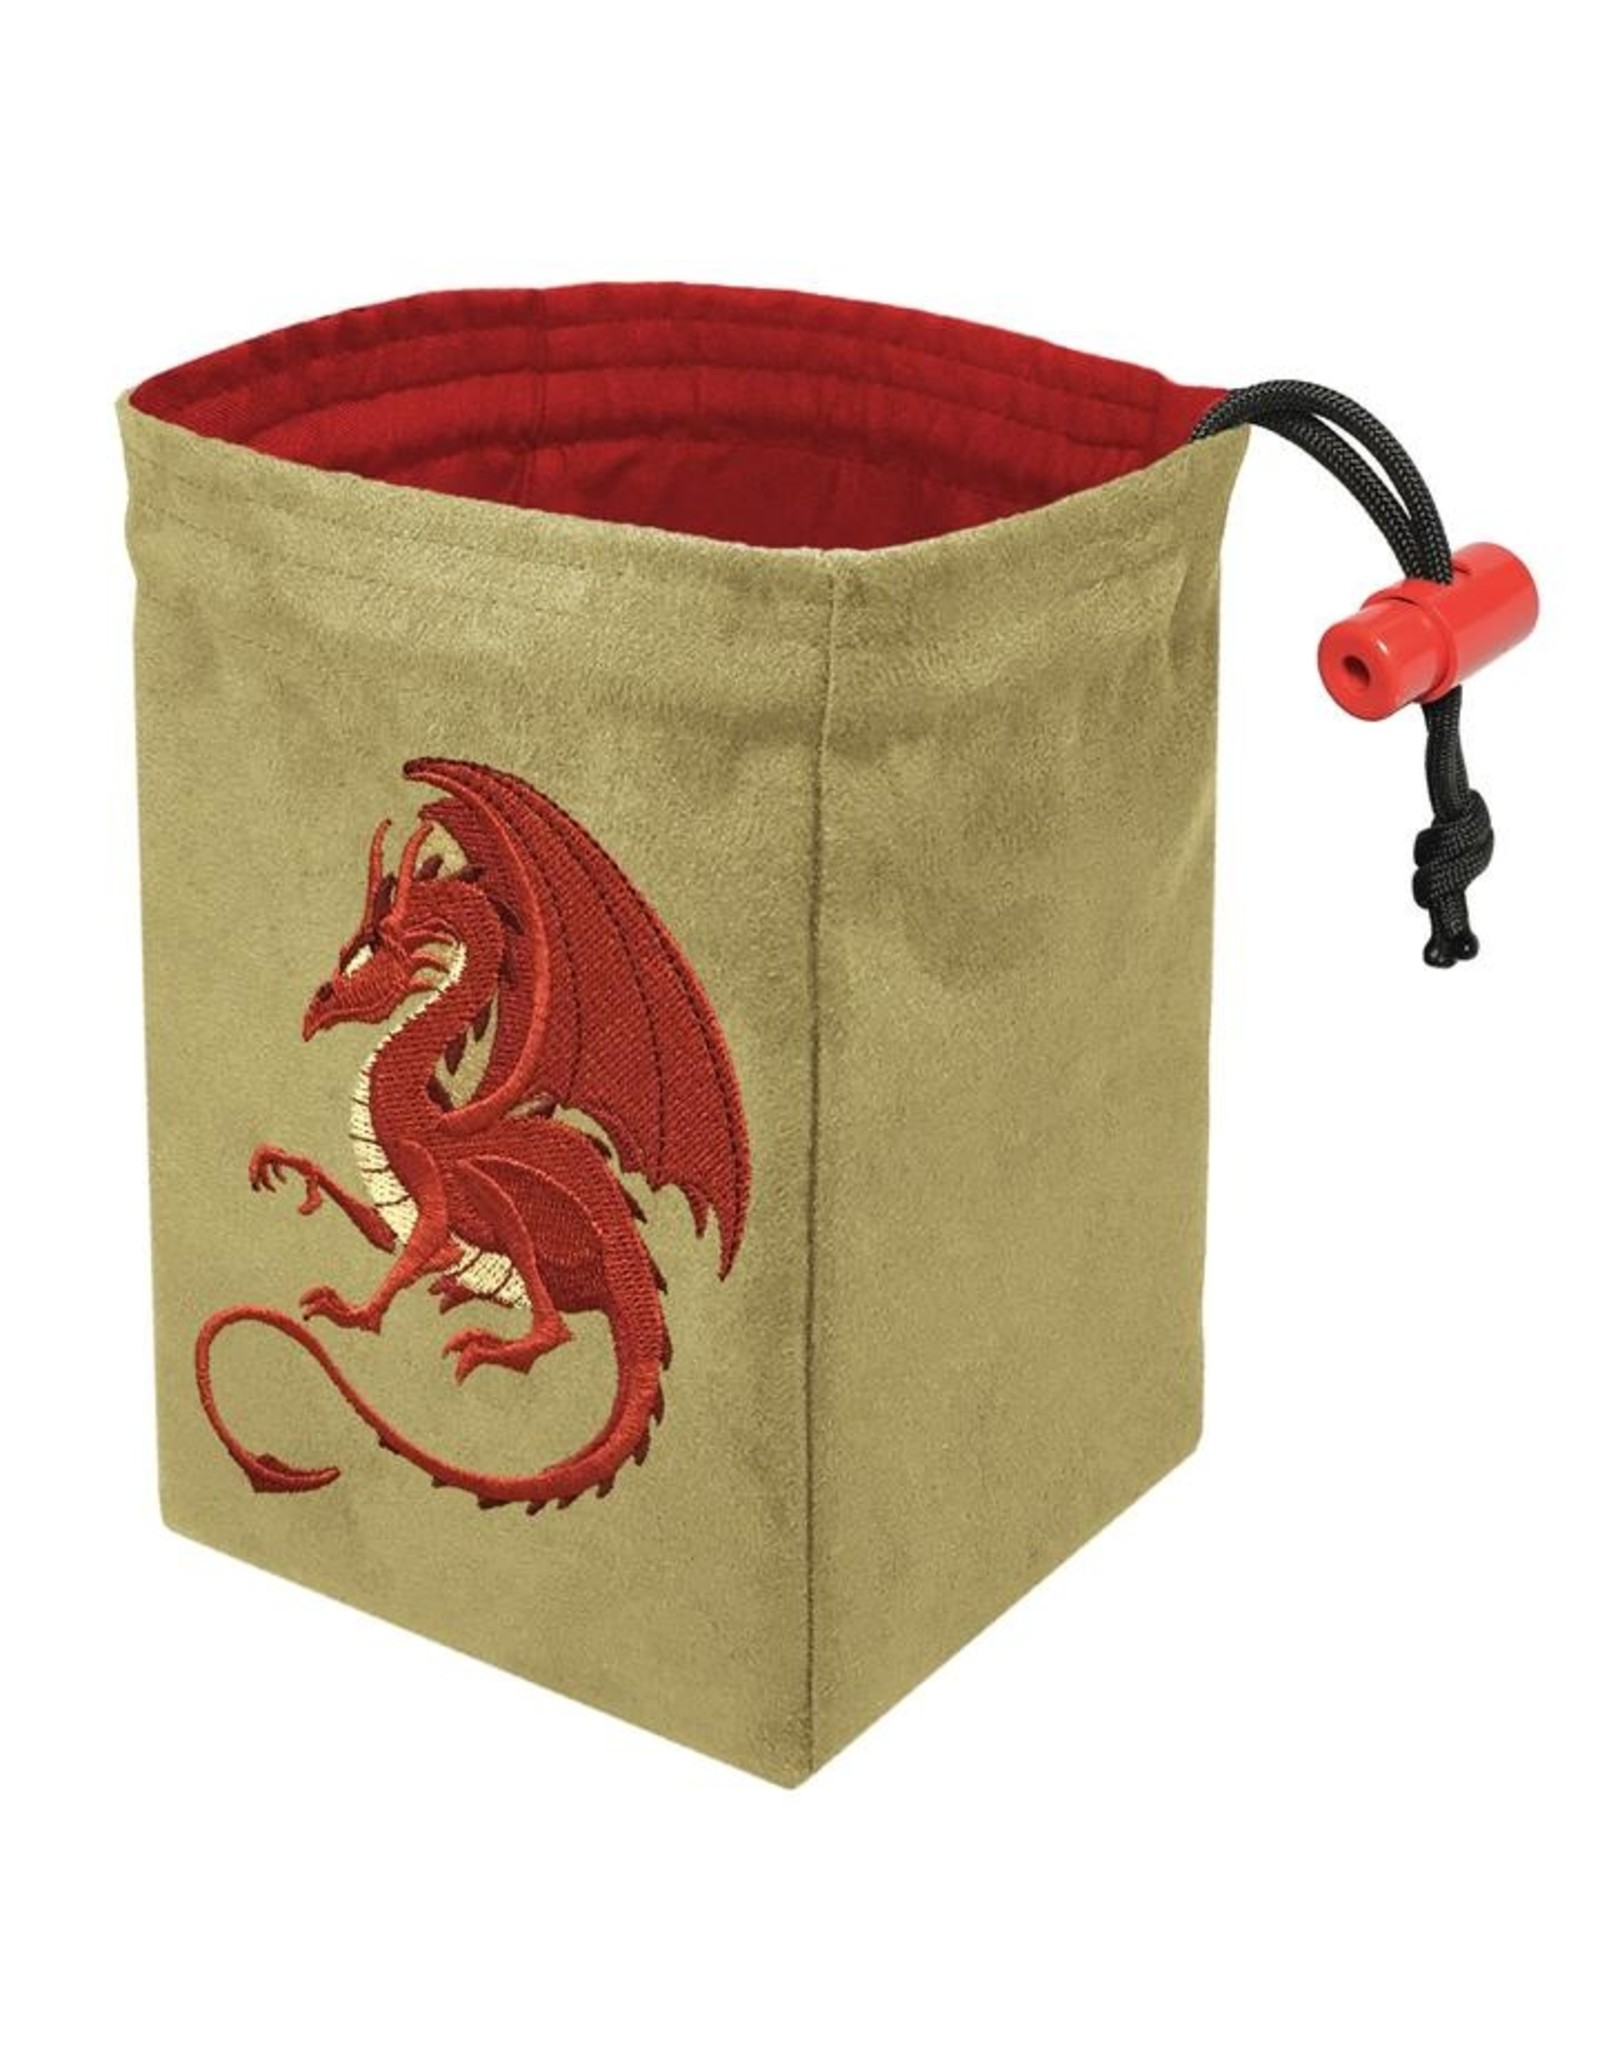 Red King Dice Bag - Red Dragon